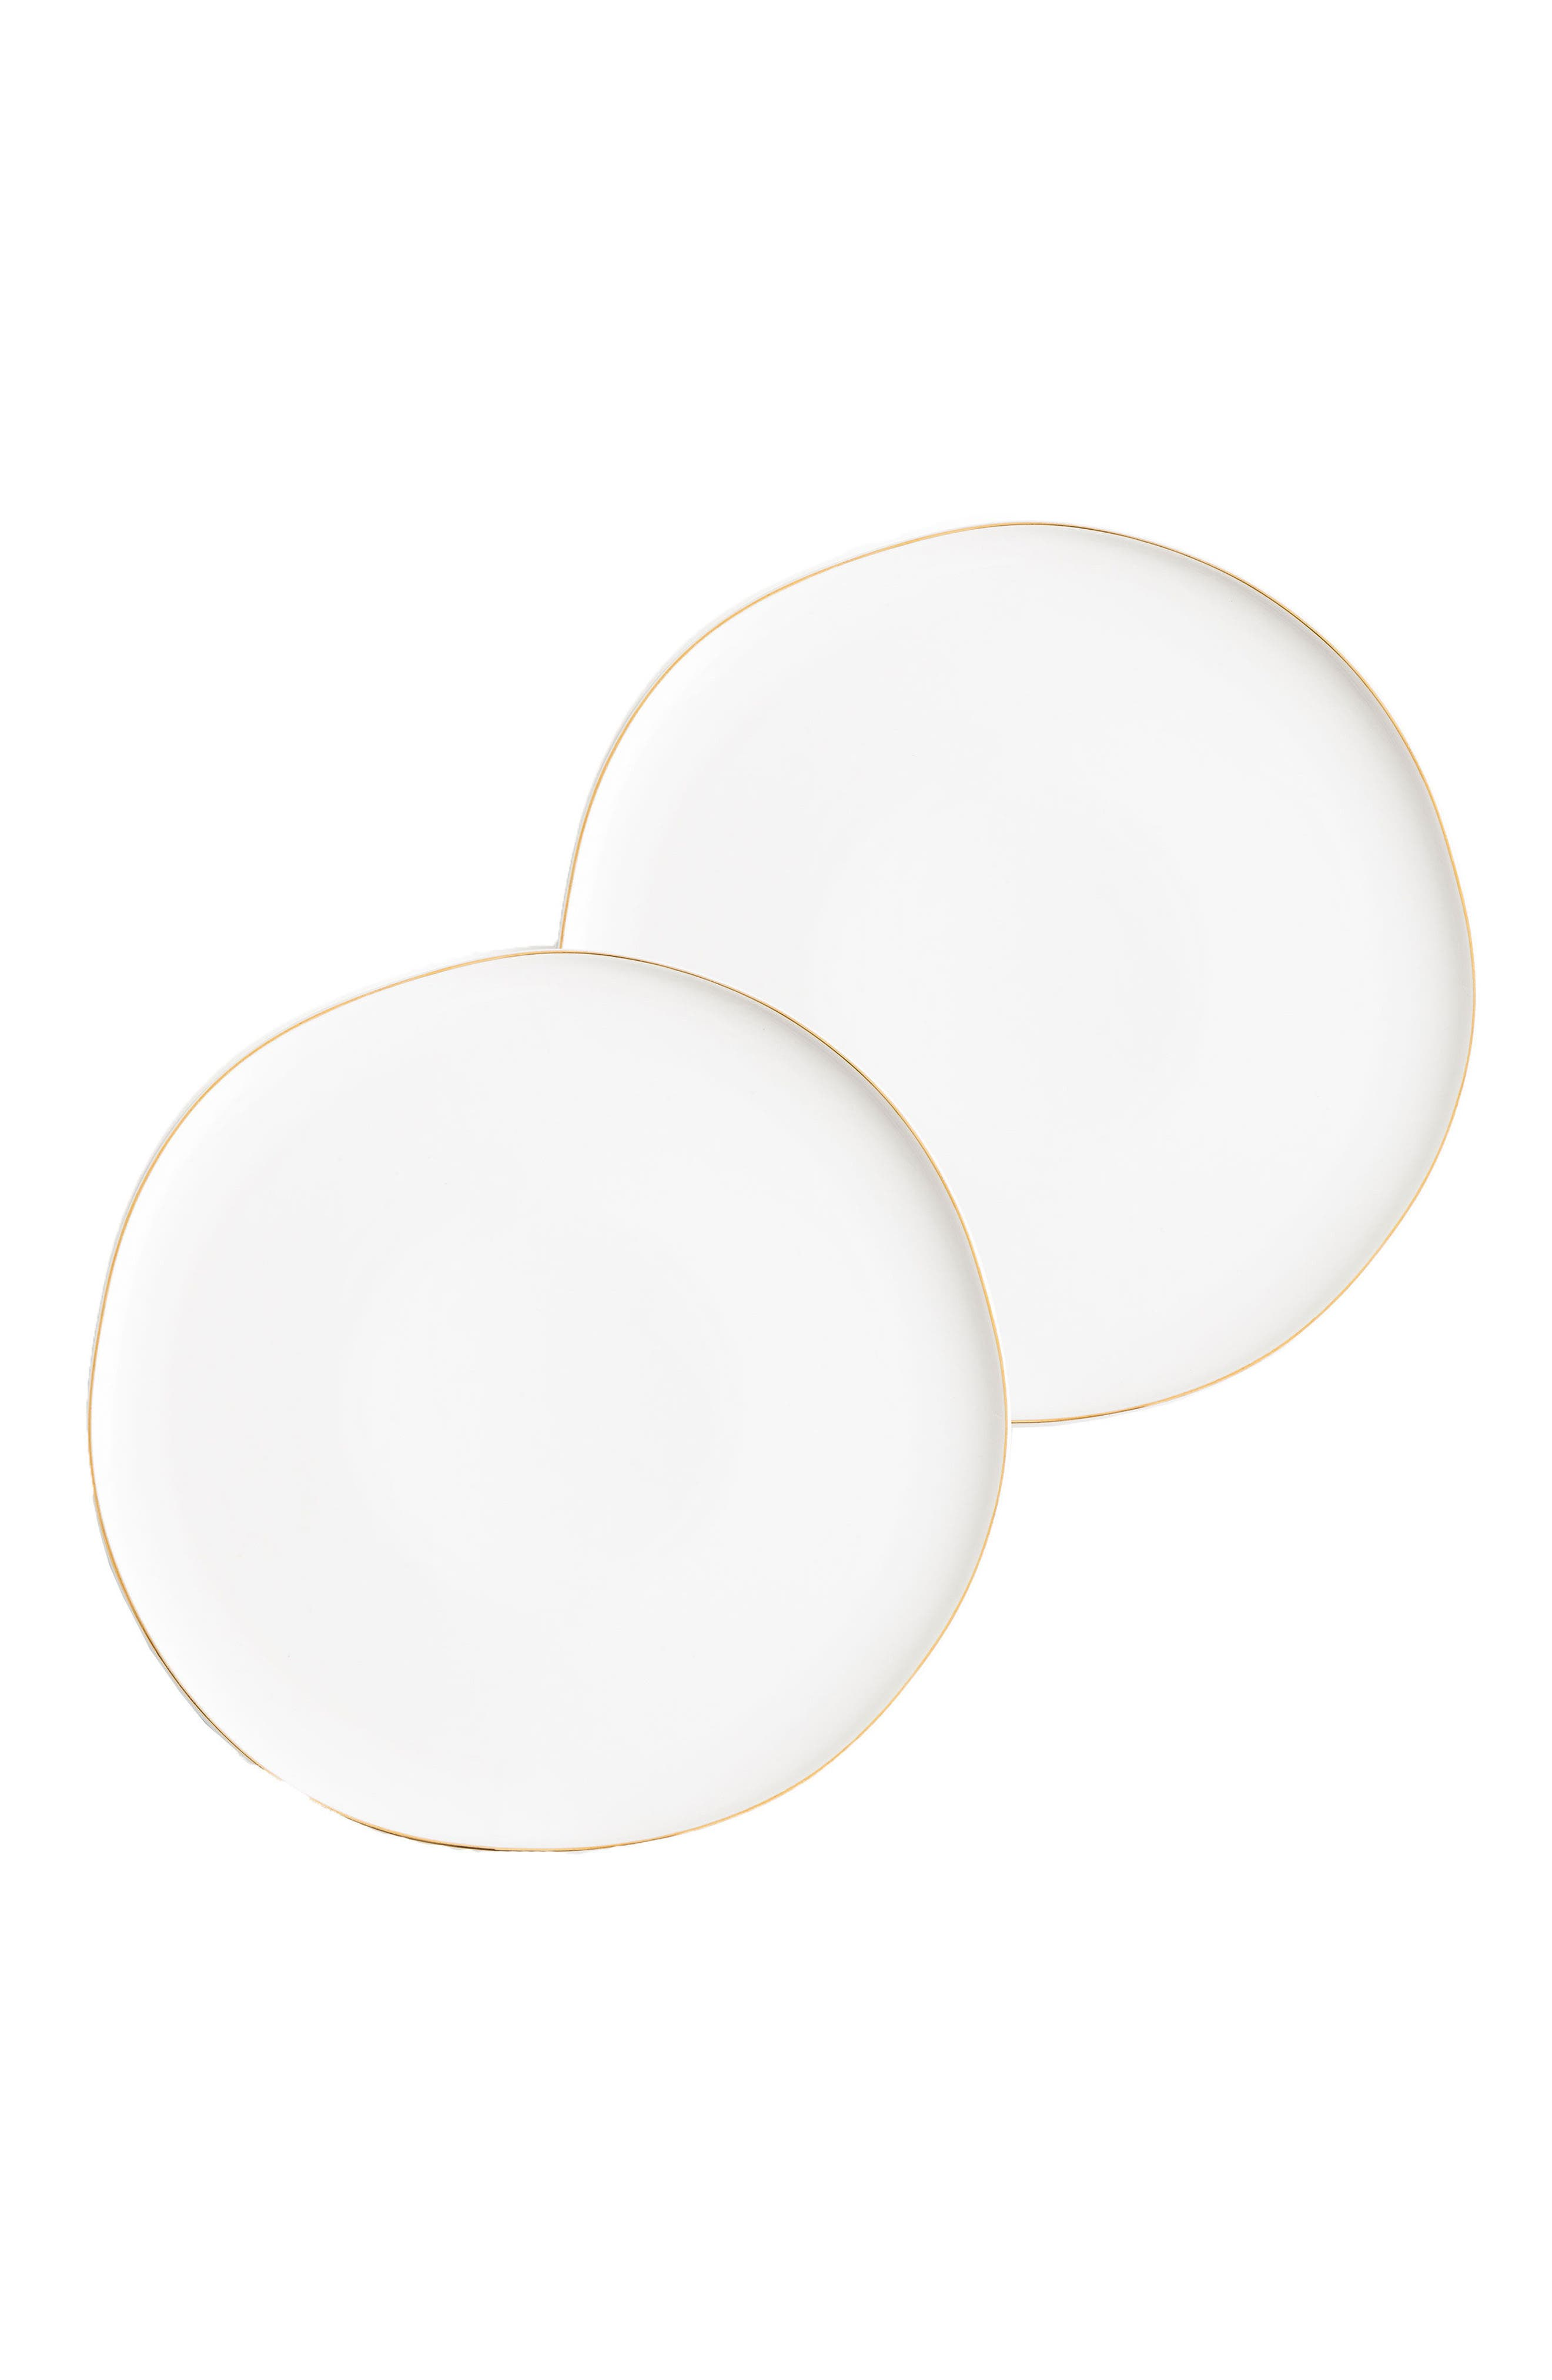 Pacifica Set of 2 Plates,                         Main,                         color, White